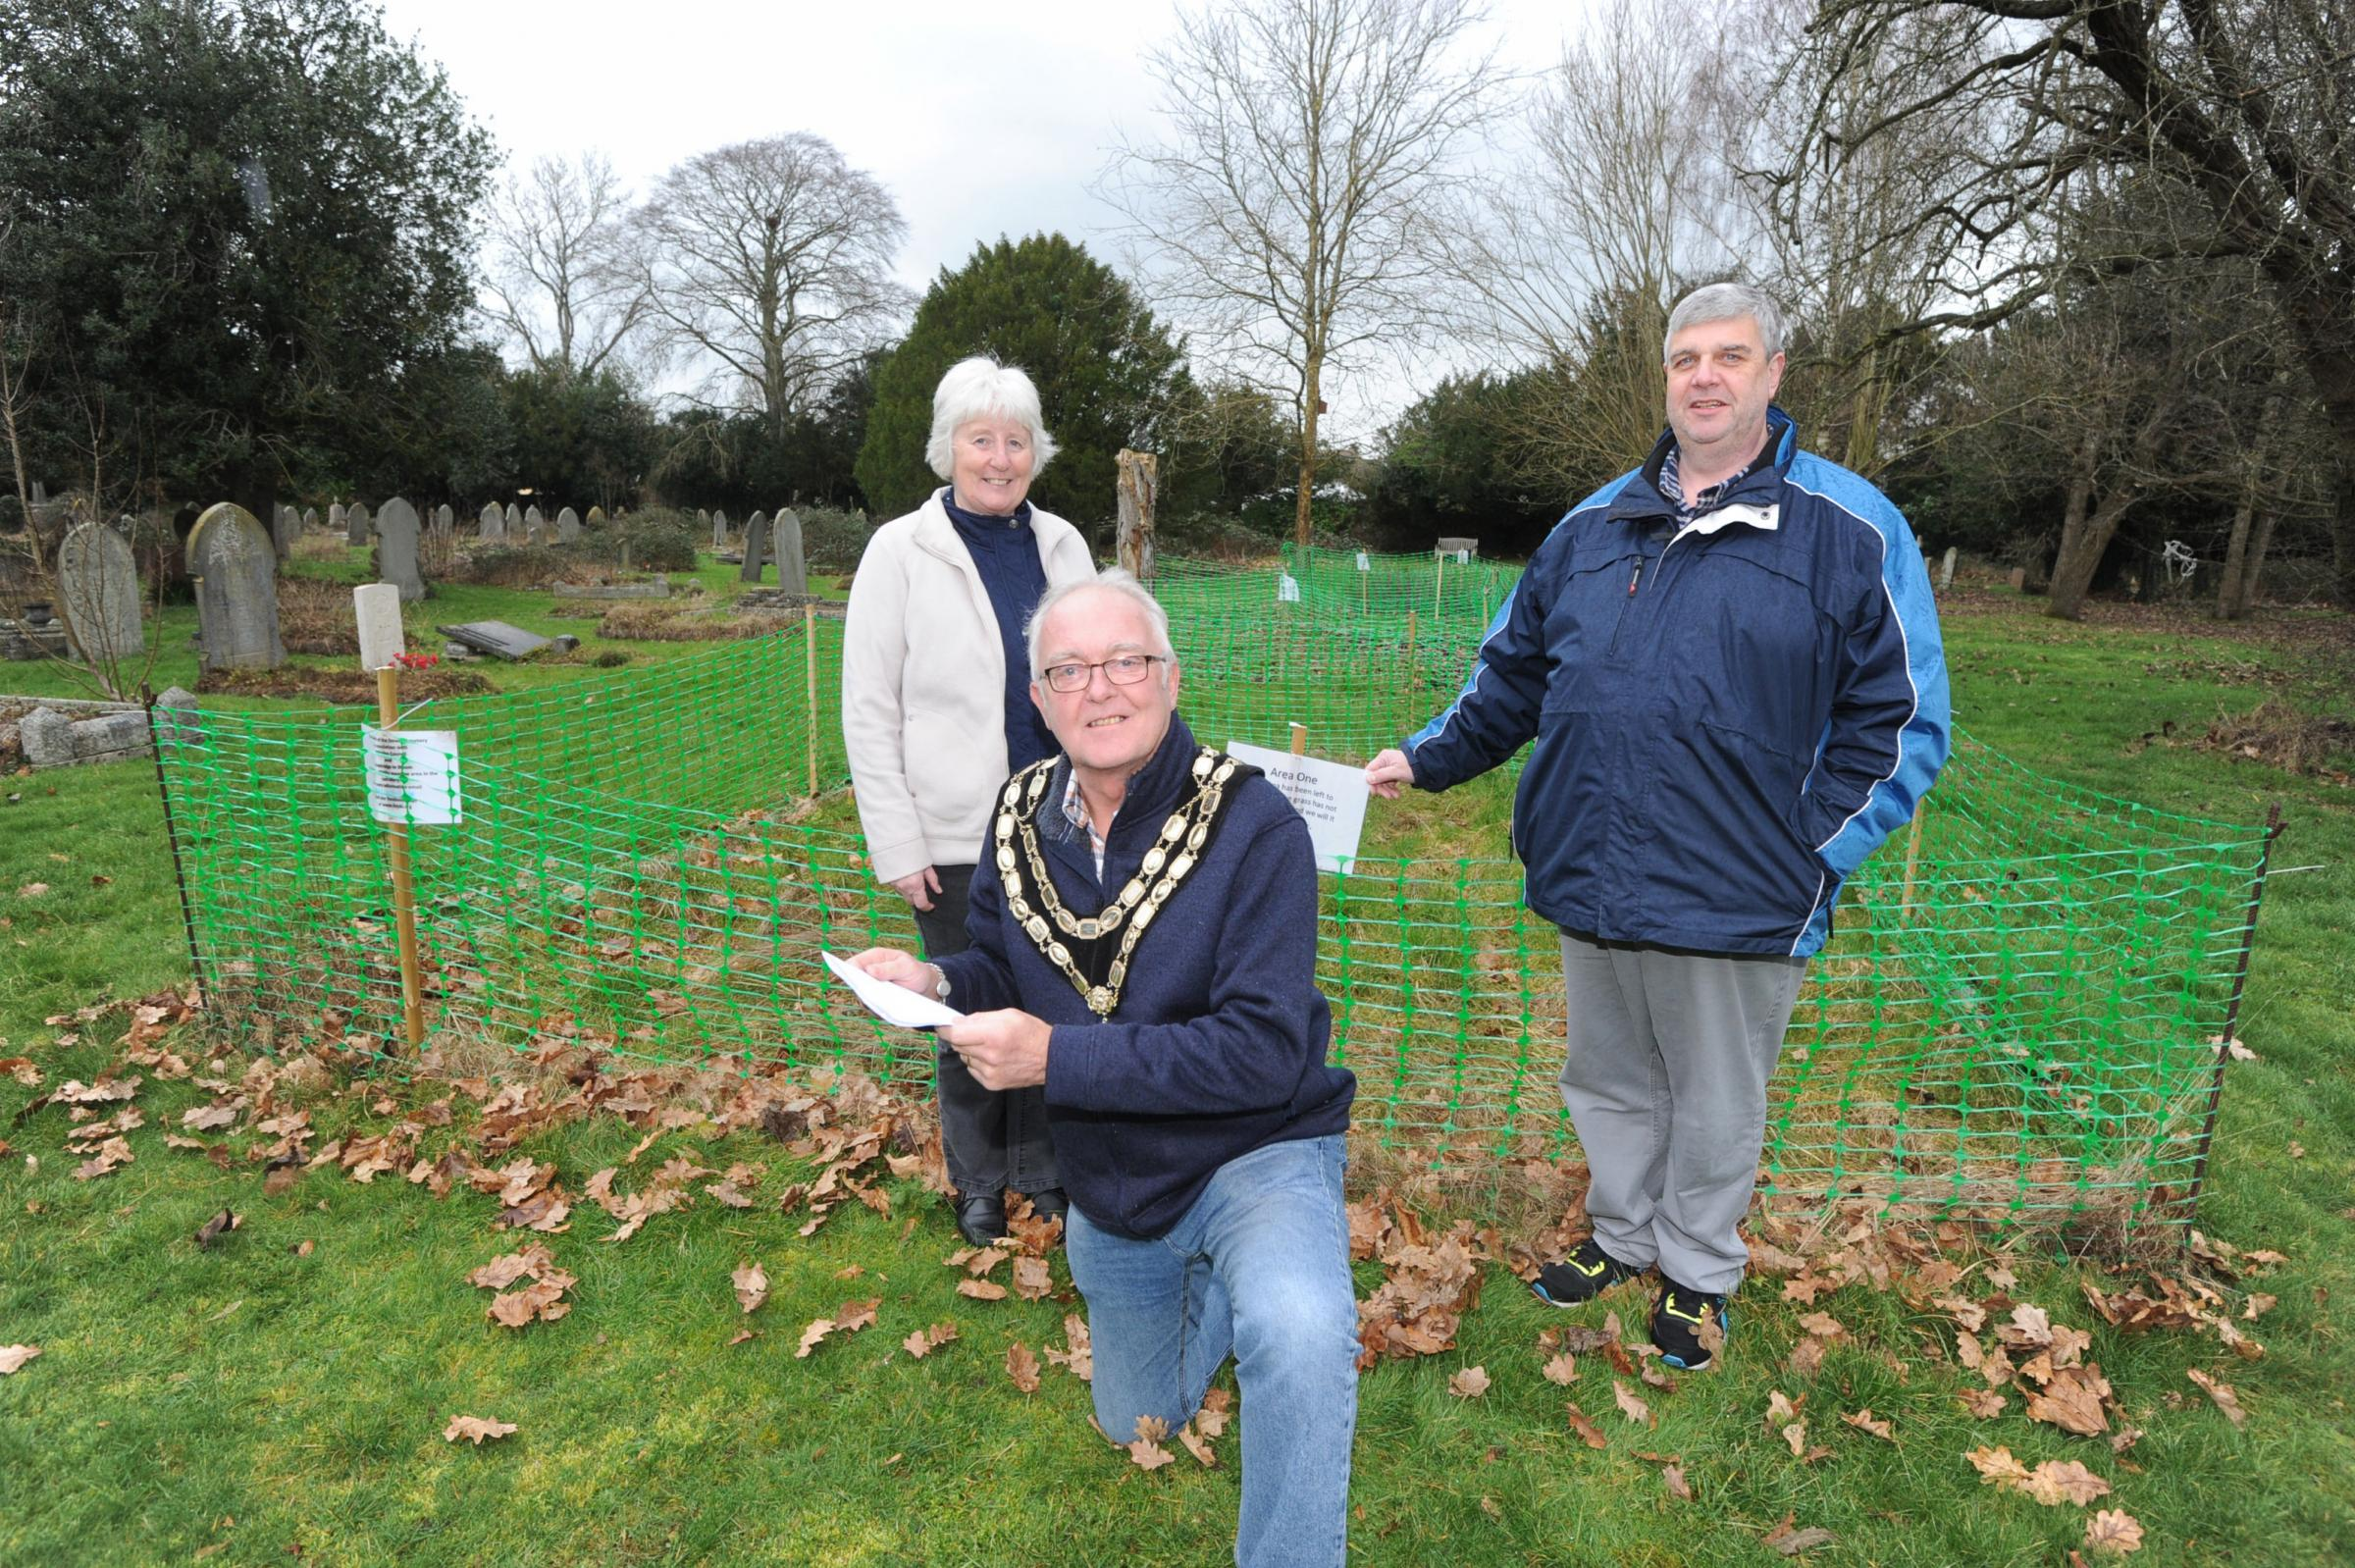 Trowbridge Mayor Dennis Drewett, his wife Lynn and Robert Wall want to plant seeds for a wildflower meadow at The Down Cemetery with Co-op funds Photo: Trevor Porter 60204/1